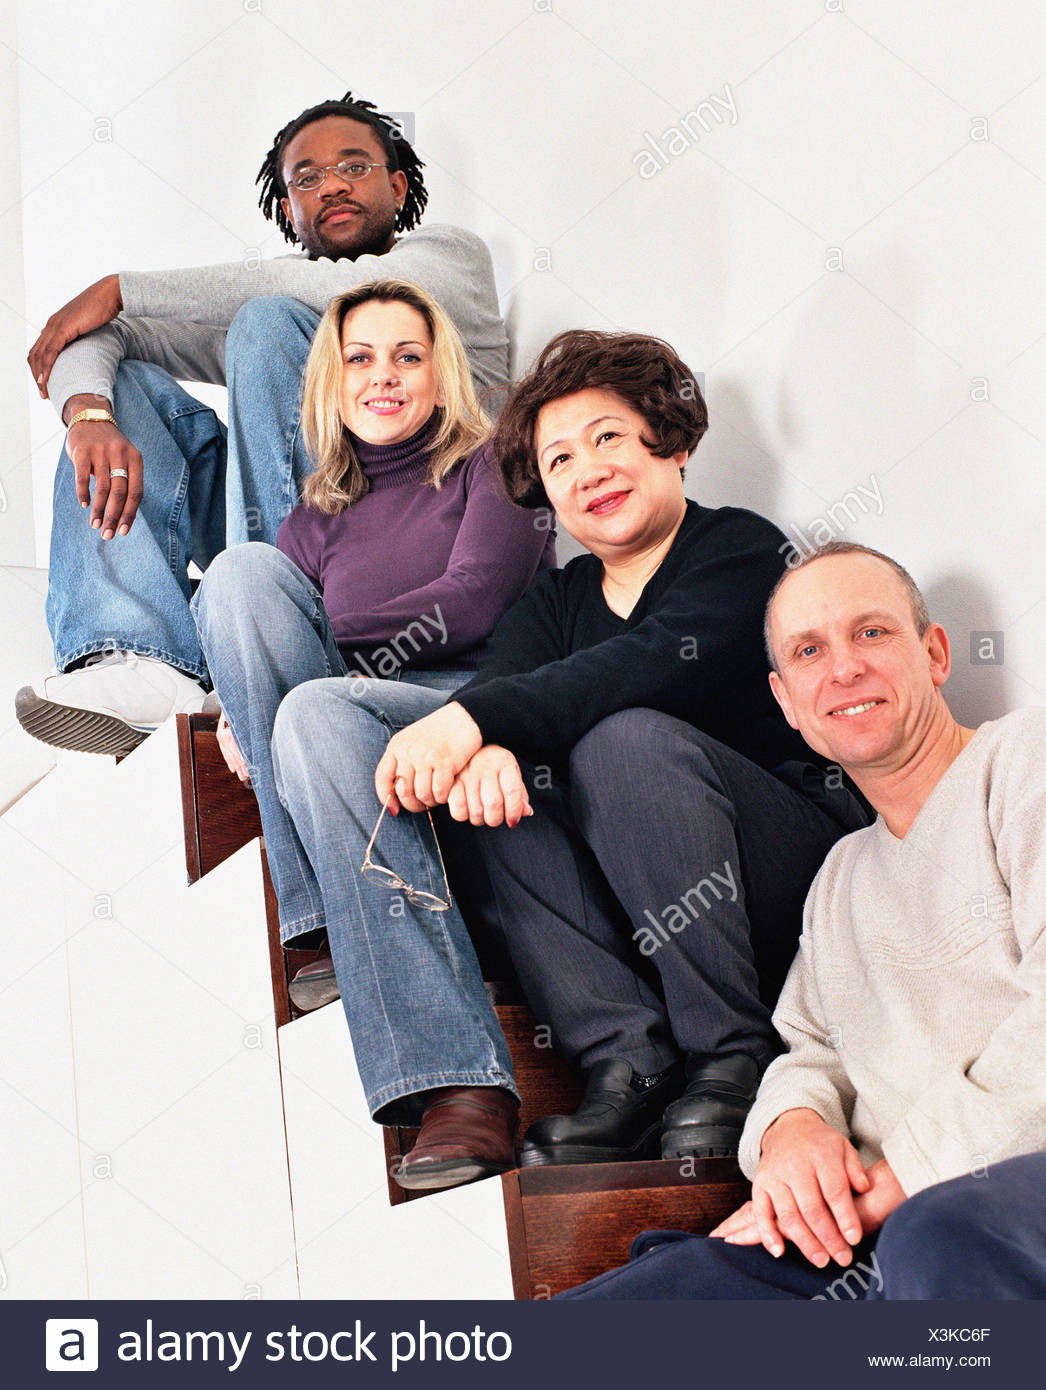 Multiracial people on stairs - Stock Image